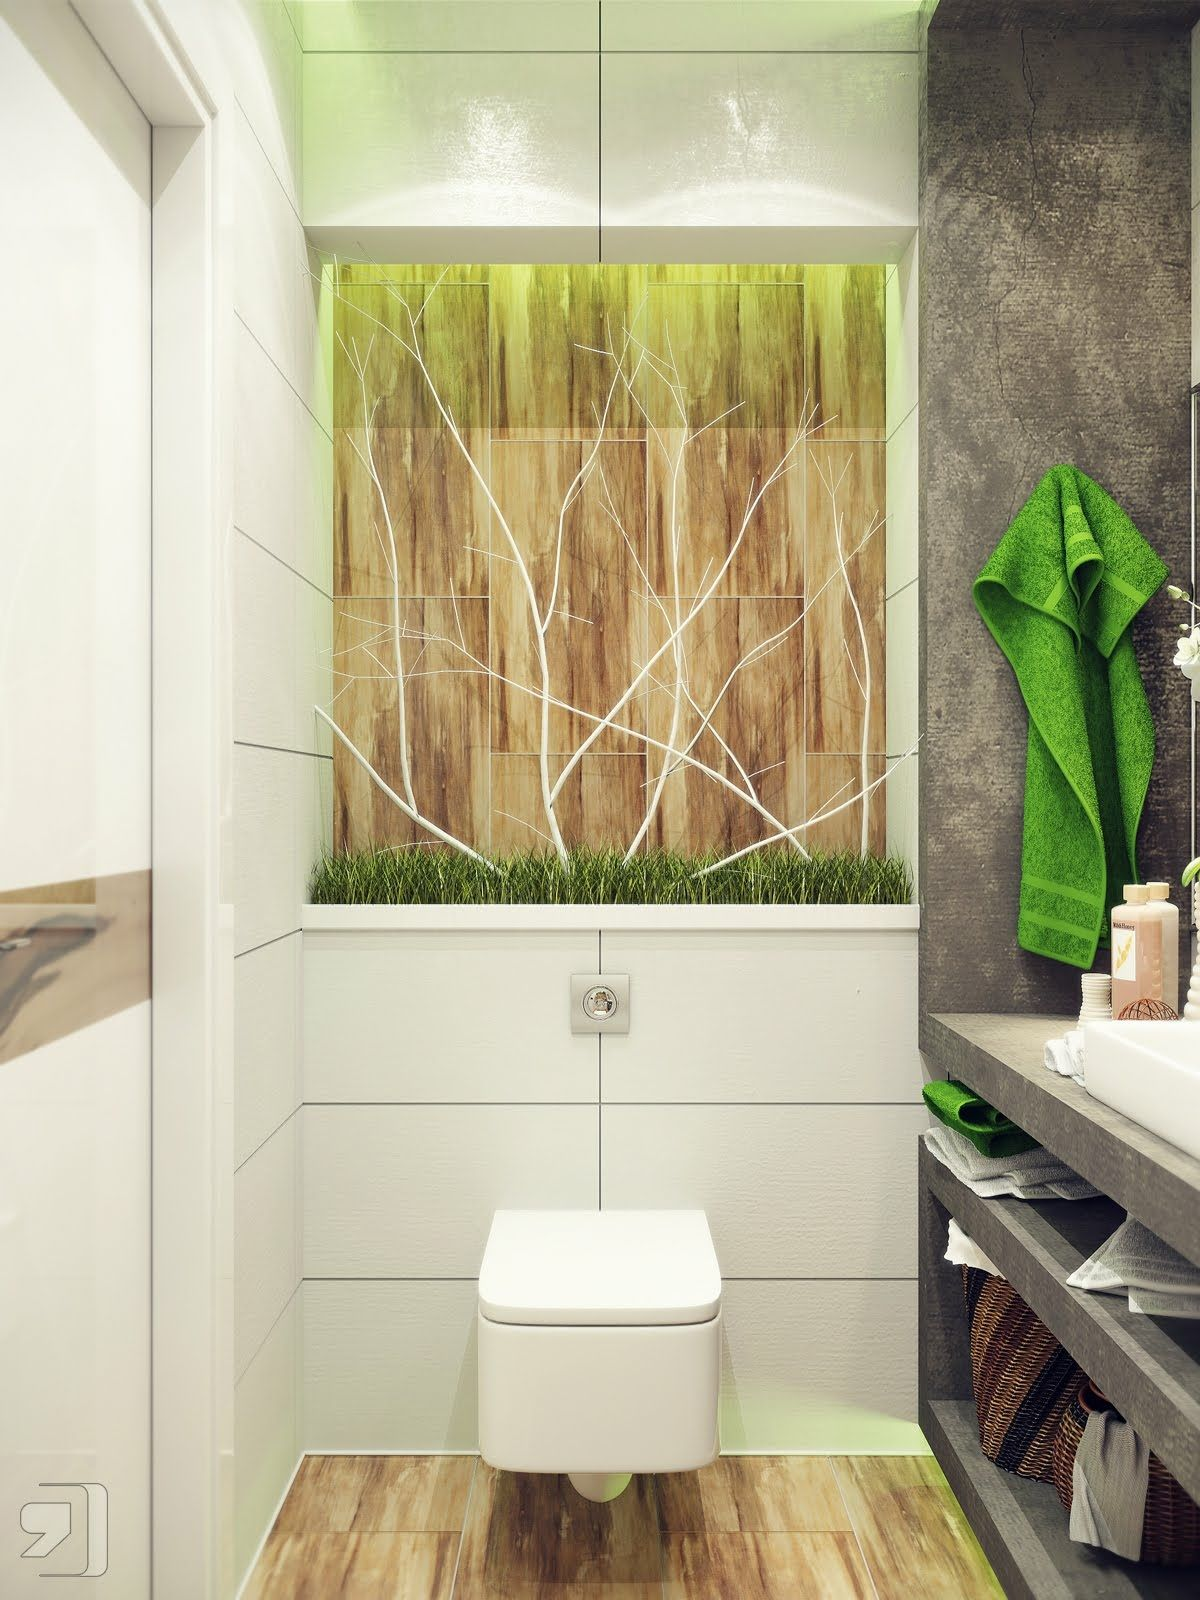 //www.housetl.com/2013/07/modern-small-bathroom-design-ideas ... on green bedroom wall color ideas, small bathroom paint color bathroom ideas, bathroom wall painting ideas, hgtv bathrooms design ideas, bathroom wall murals ideas, green color bathroom design ideas, bedroom wall paint color ideas, bathroom wall decorating ideas, bathroom wall art ideas, black white gray bathroom ideas, bathroom wall lighting ideas,